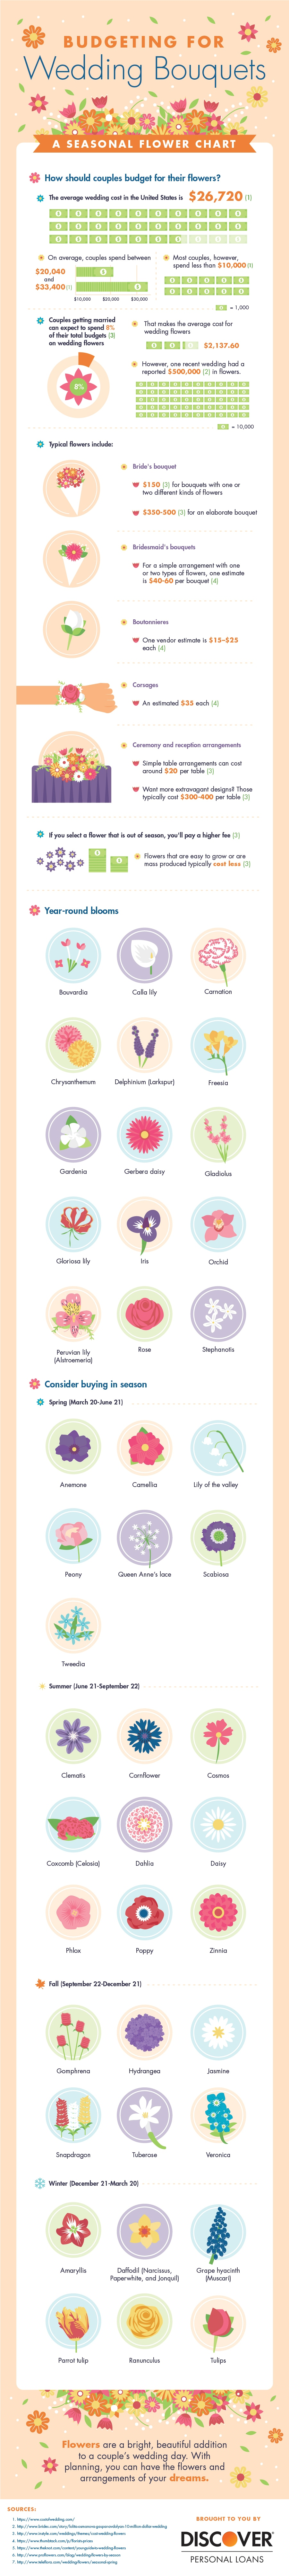 wedding seasonal flower infographic